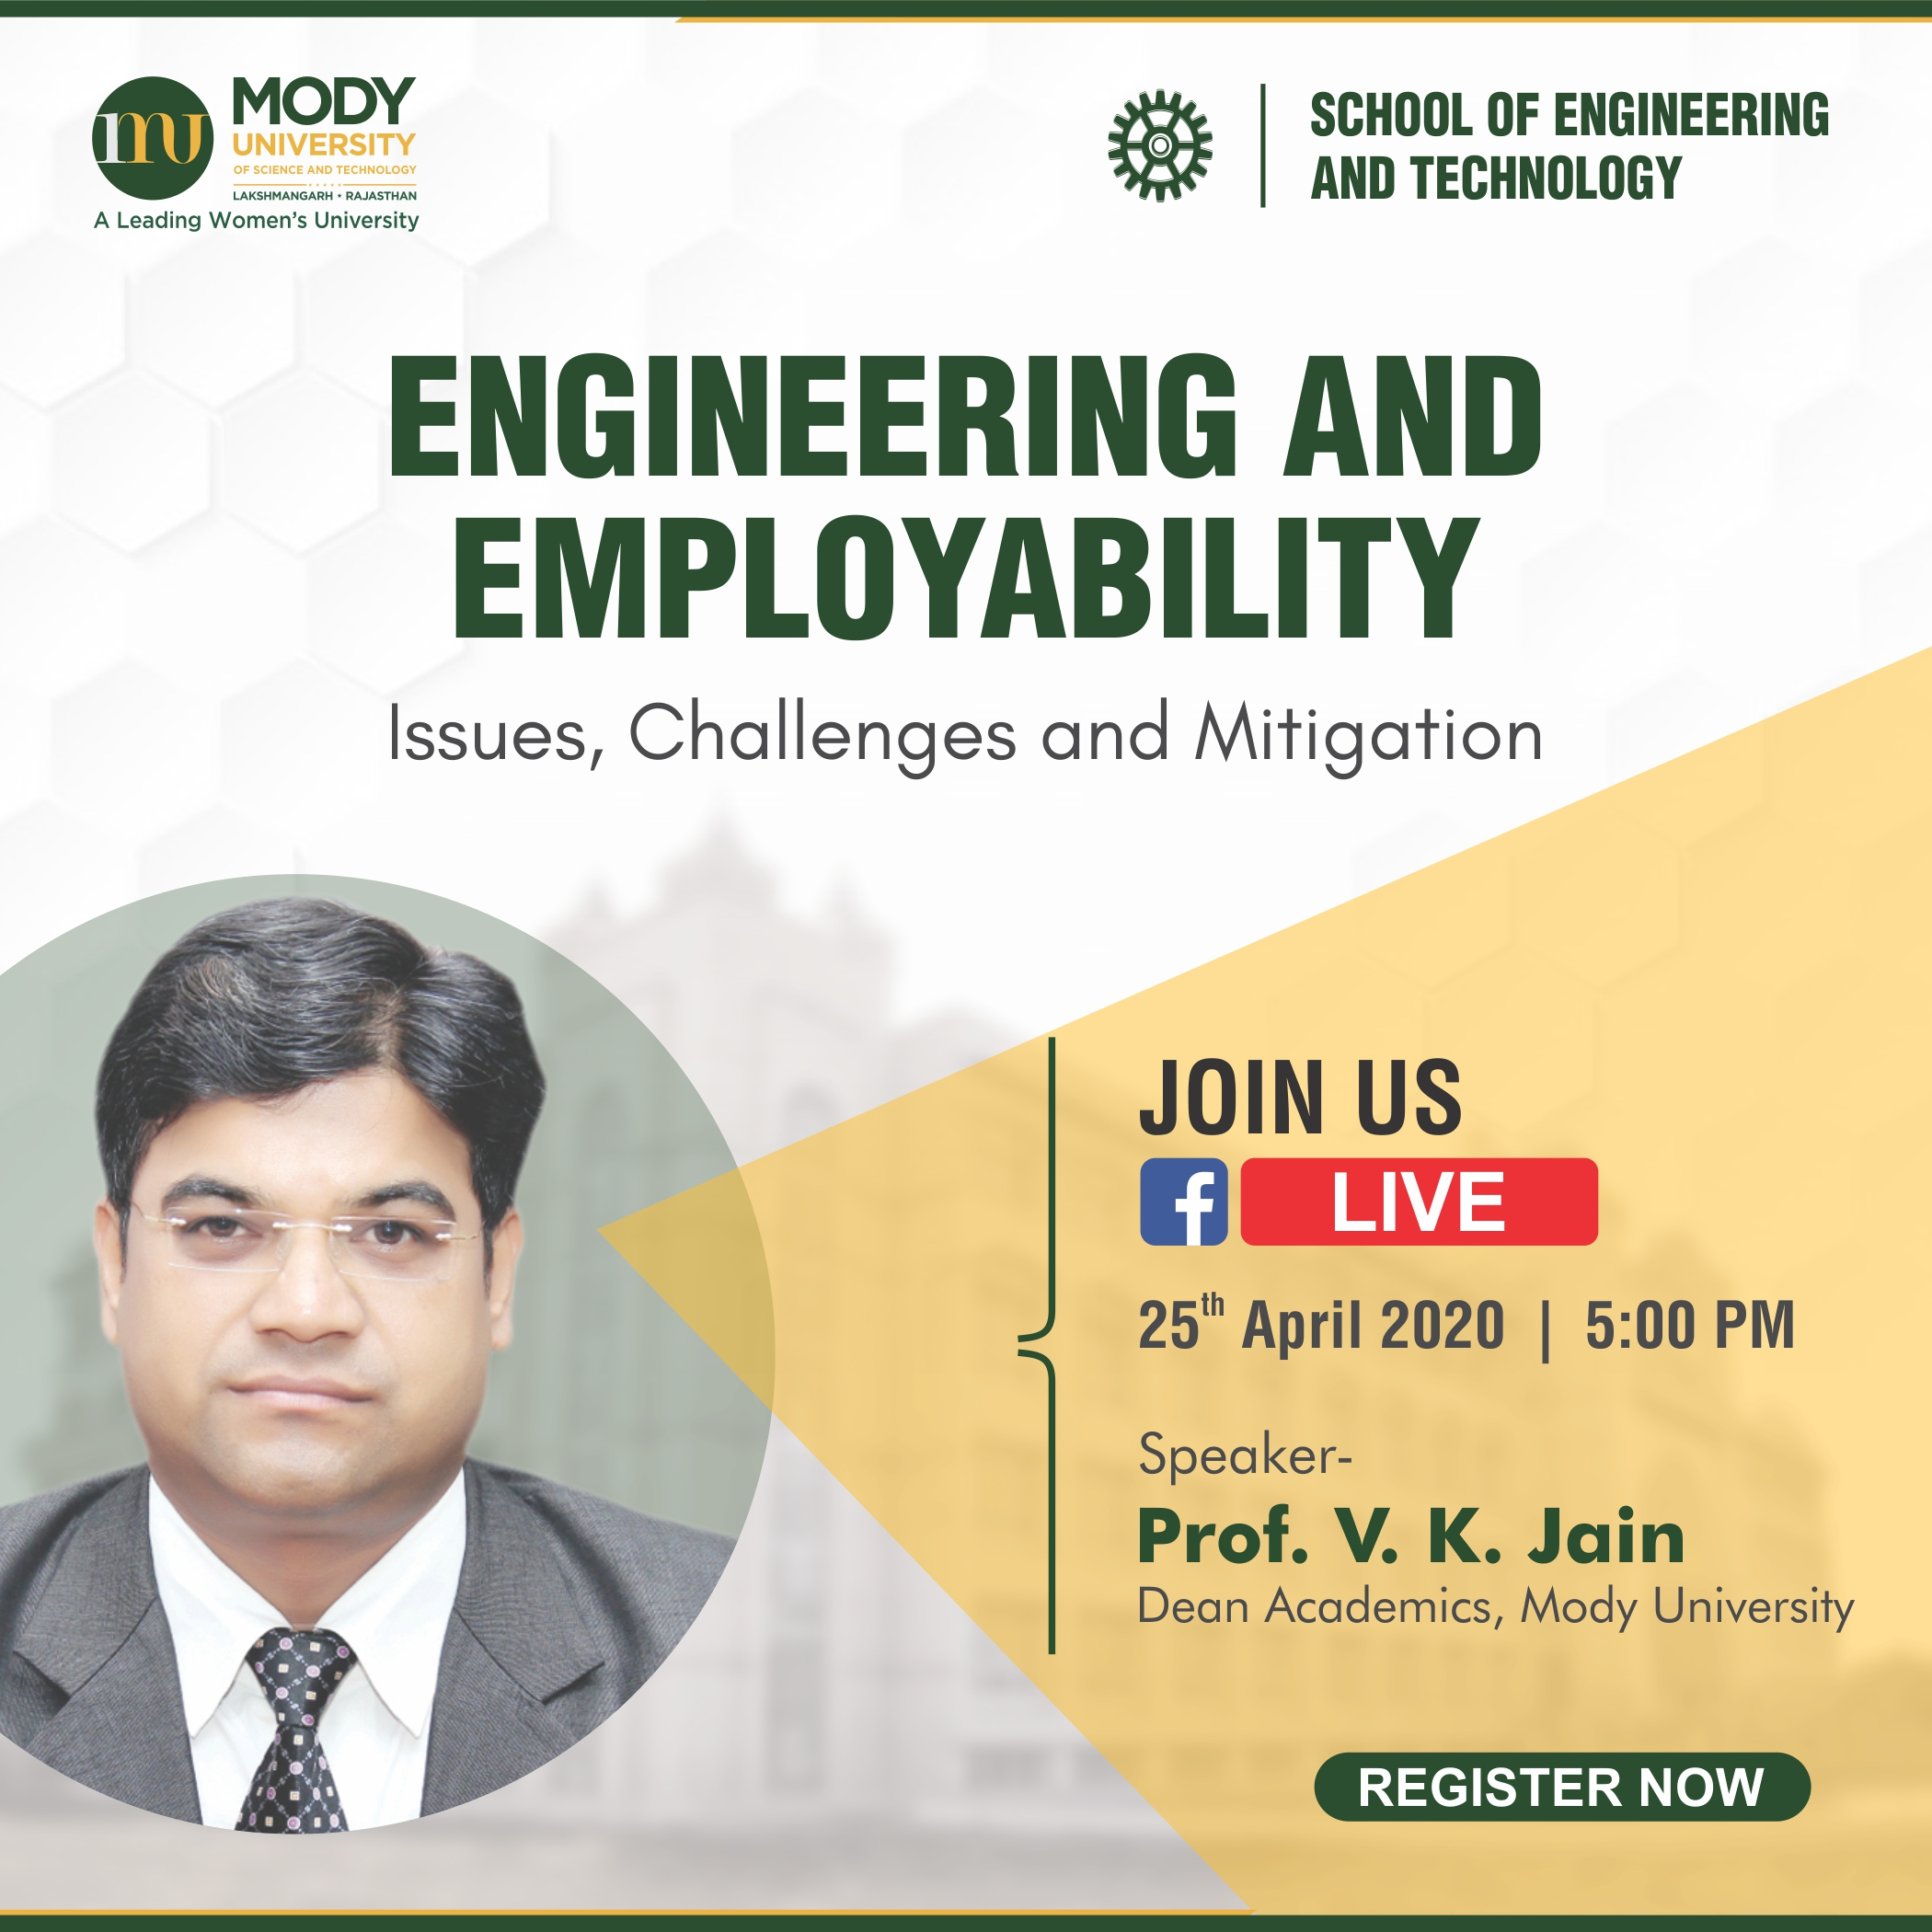 002 Engineering and Employability: Issues, Challenges and Mitigation